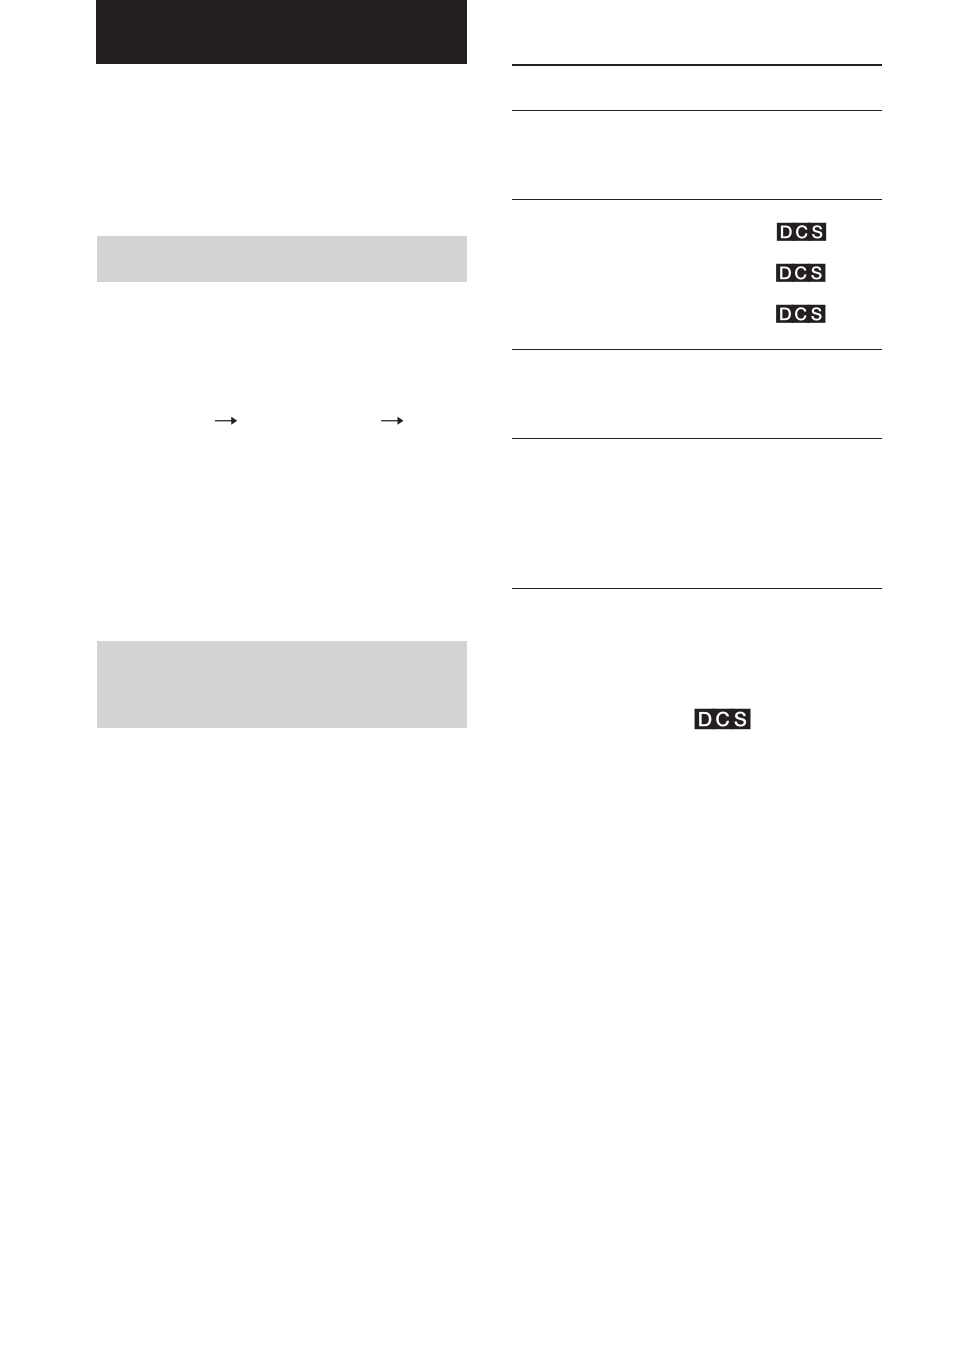 Adjusting the sound, Selecting the sound effect, Sound